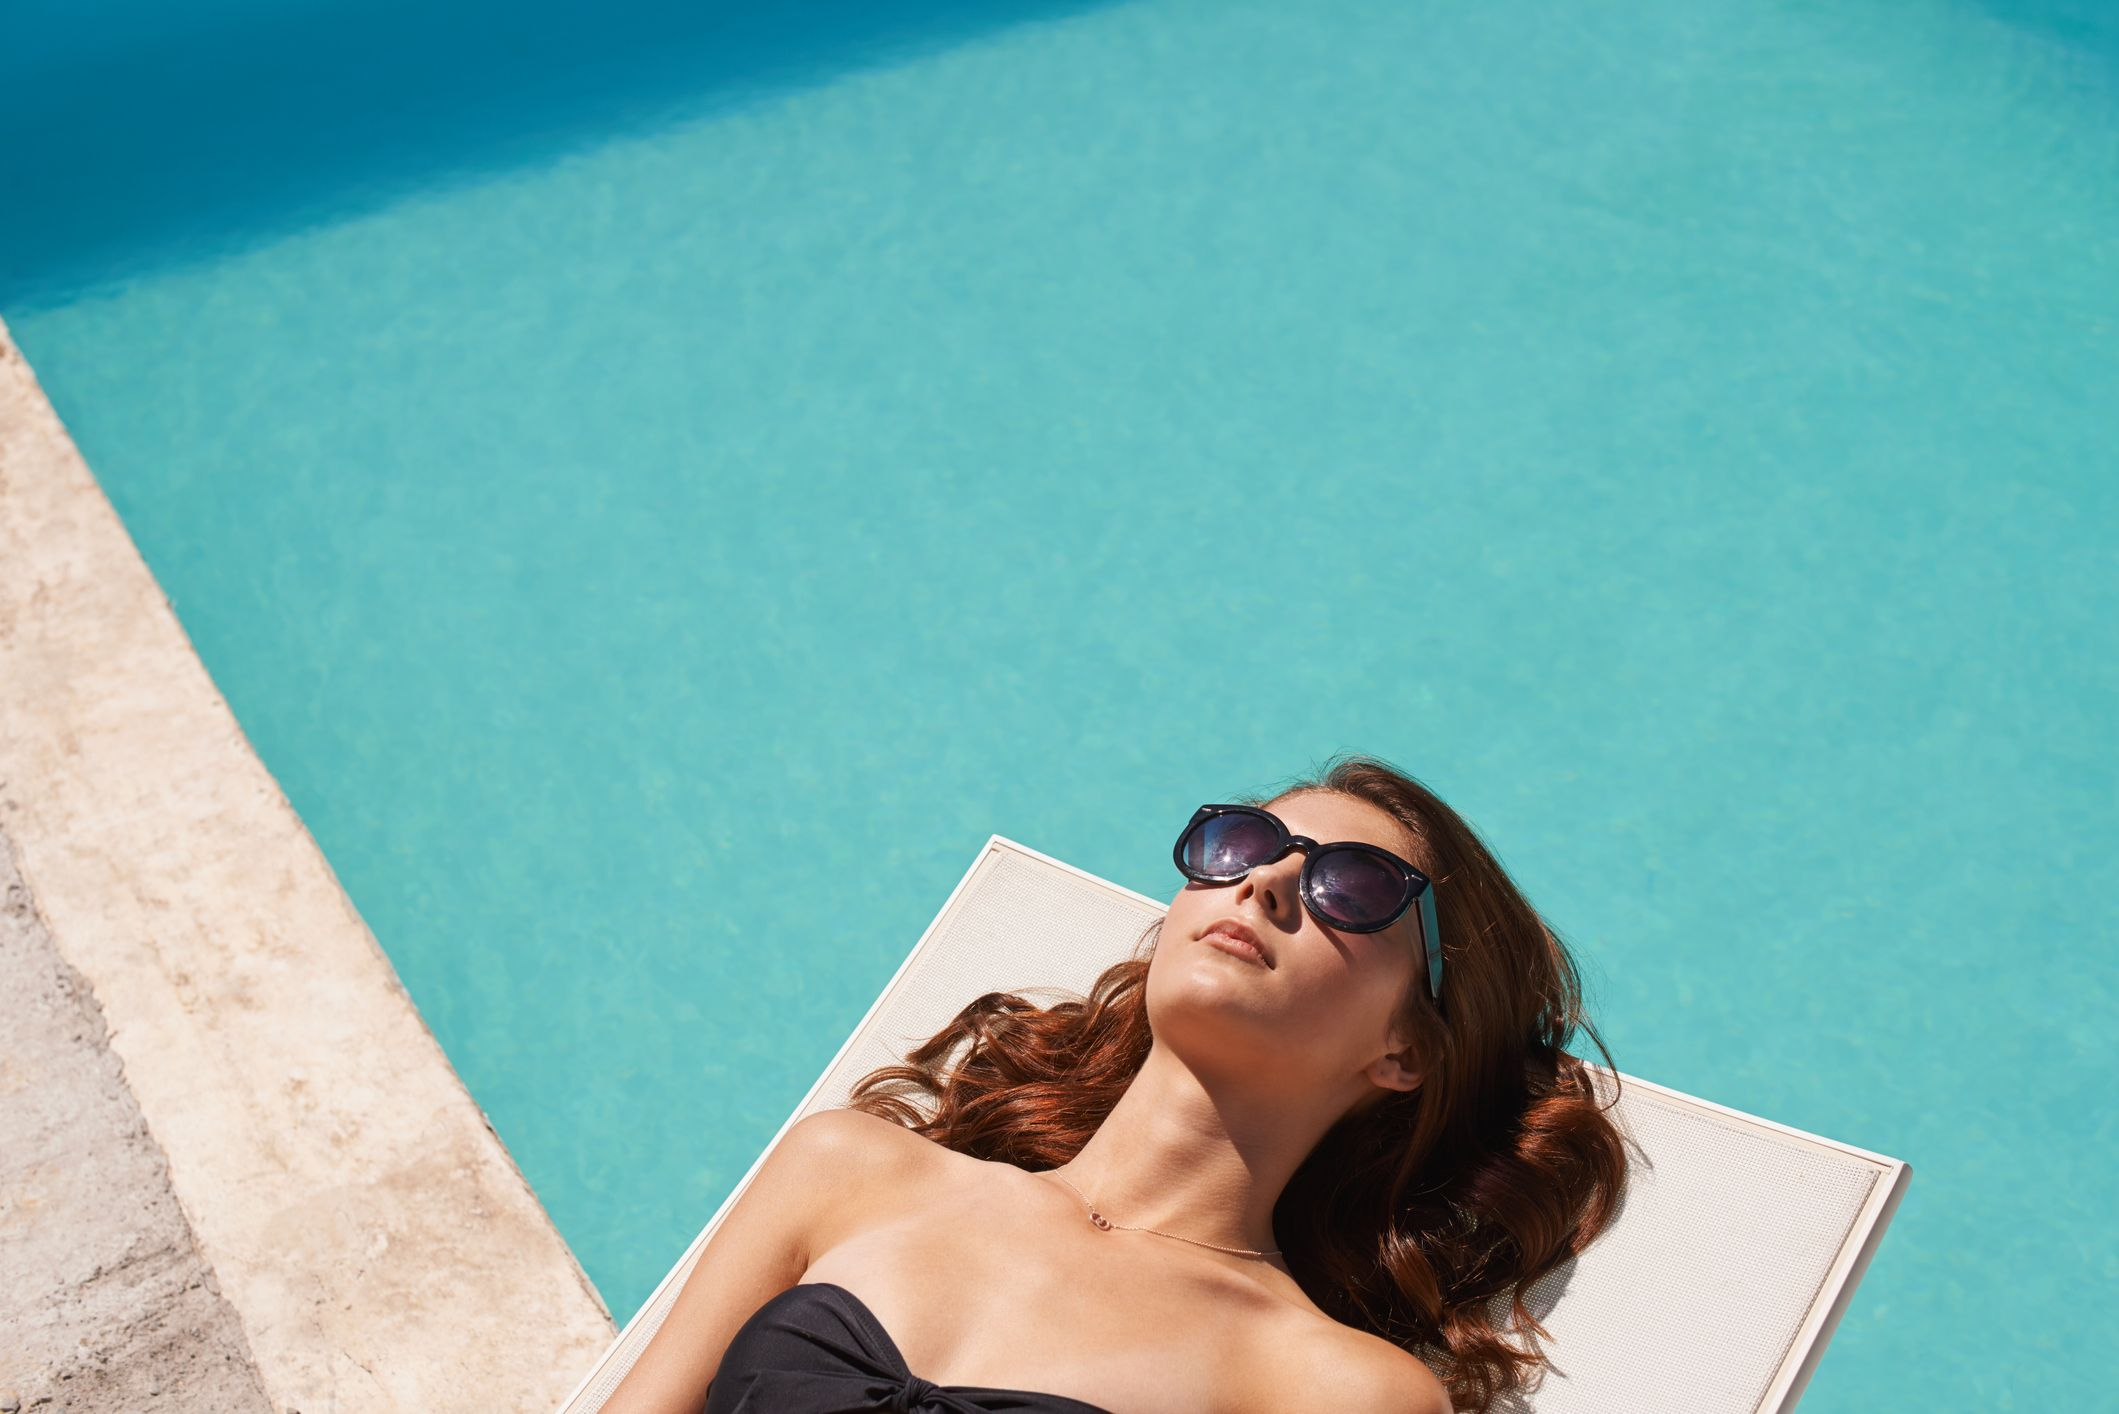 How to tan: tanning injections, fake tan and sun safety tips